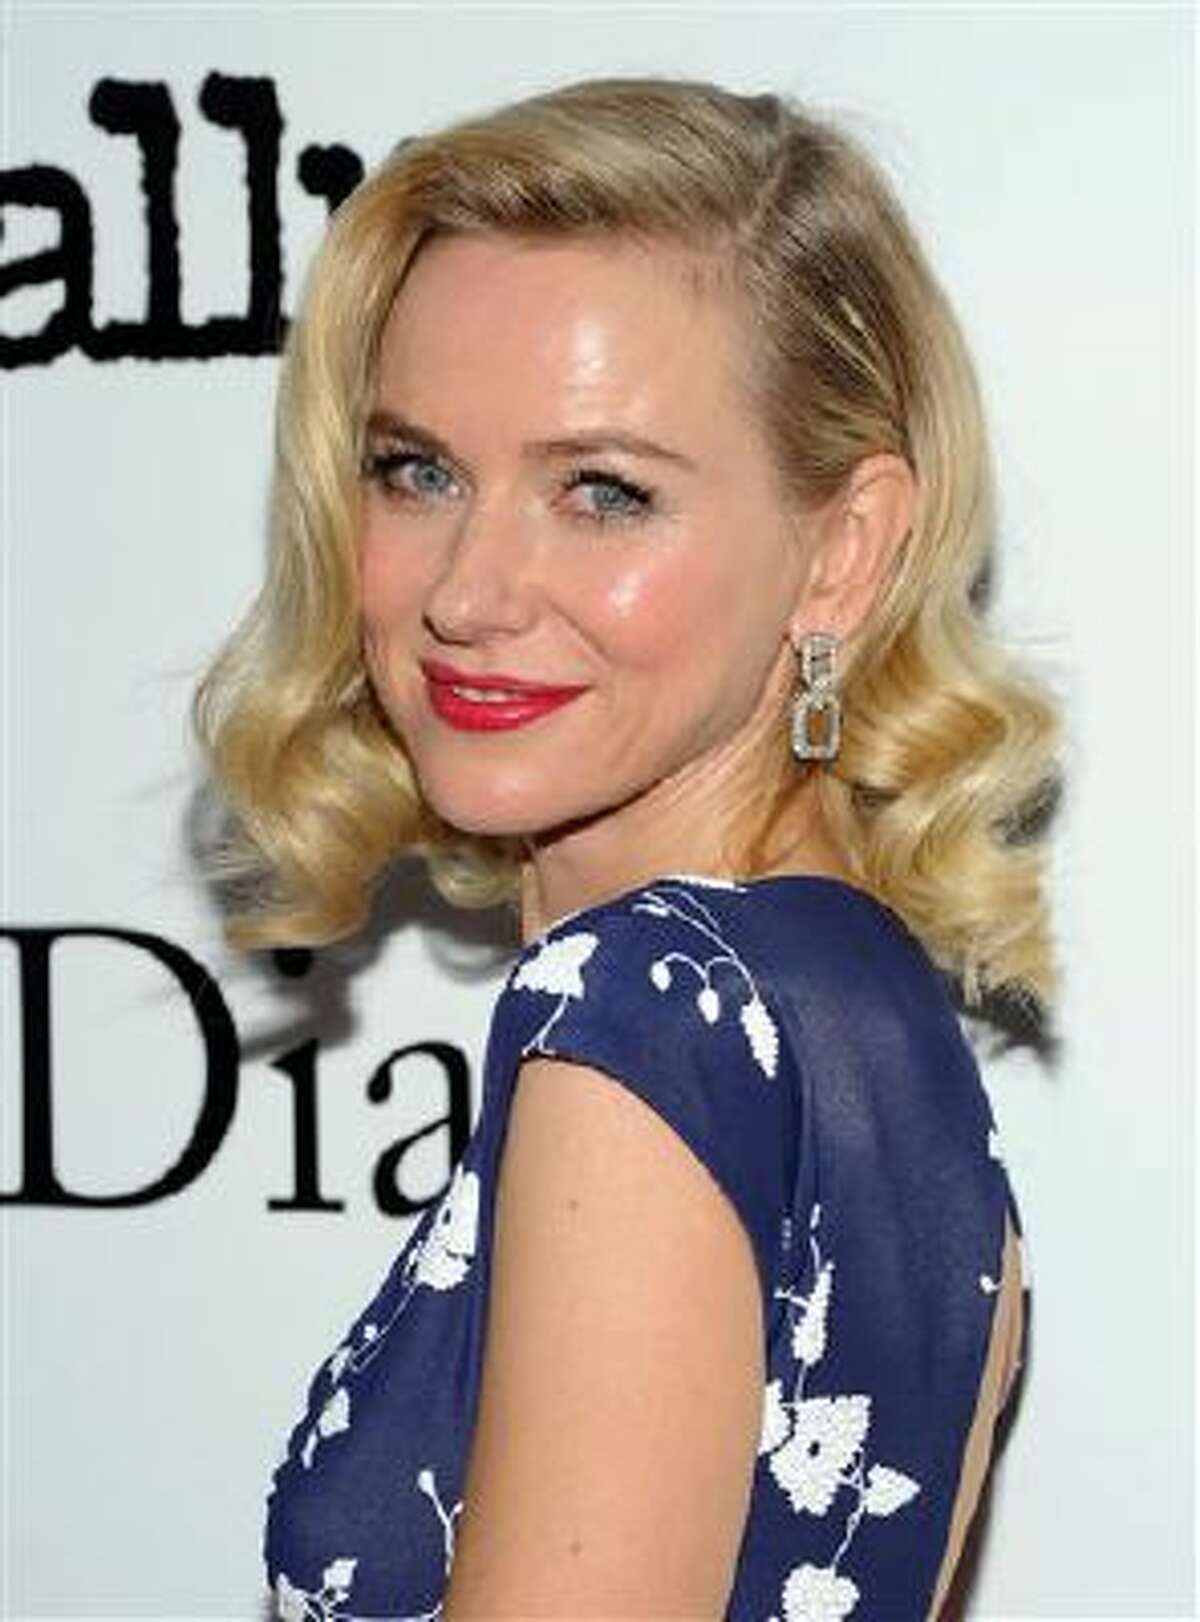 Actress Naomi Watts attends the premiere of